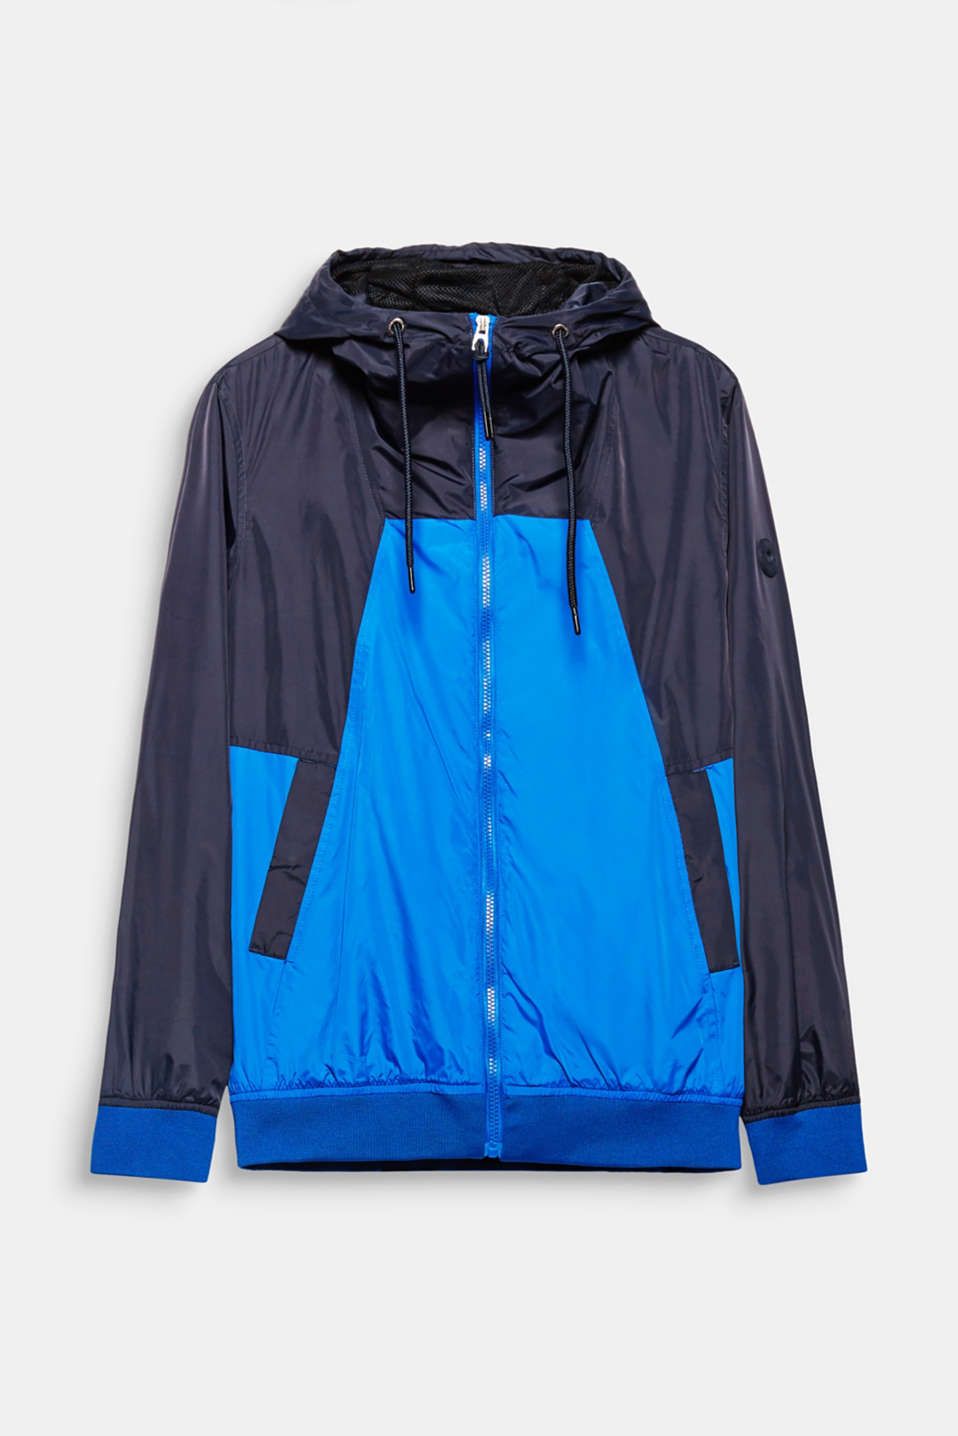 This rain jacket will keep you perfectly dressed between seasons.